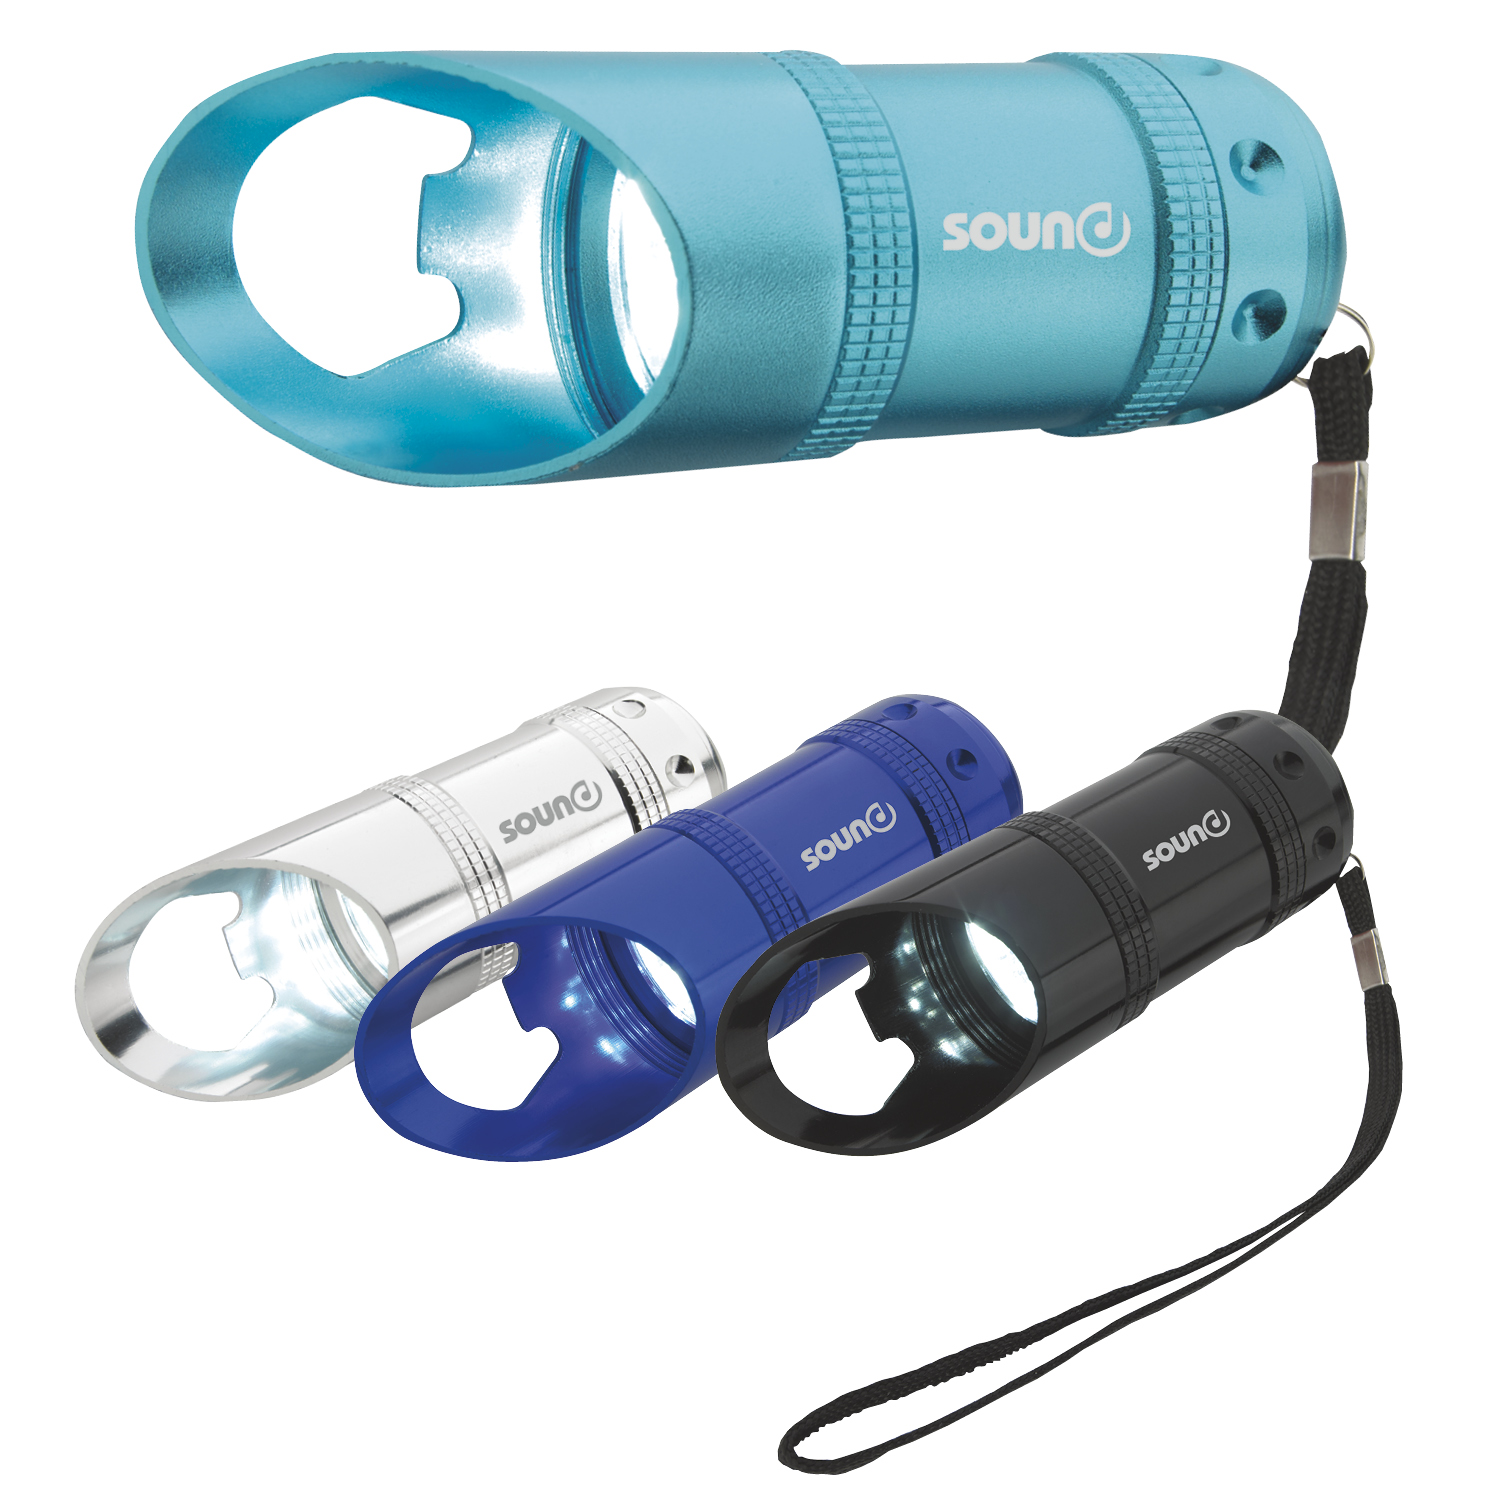 Flashlight with Bottle Opener - Laser Engraved Imprint